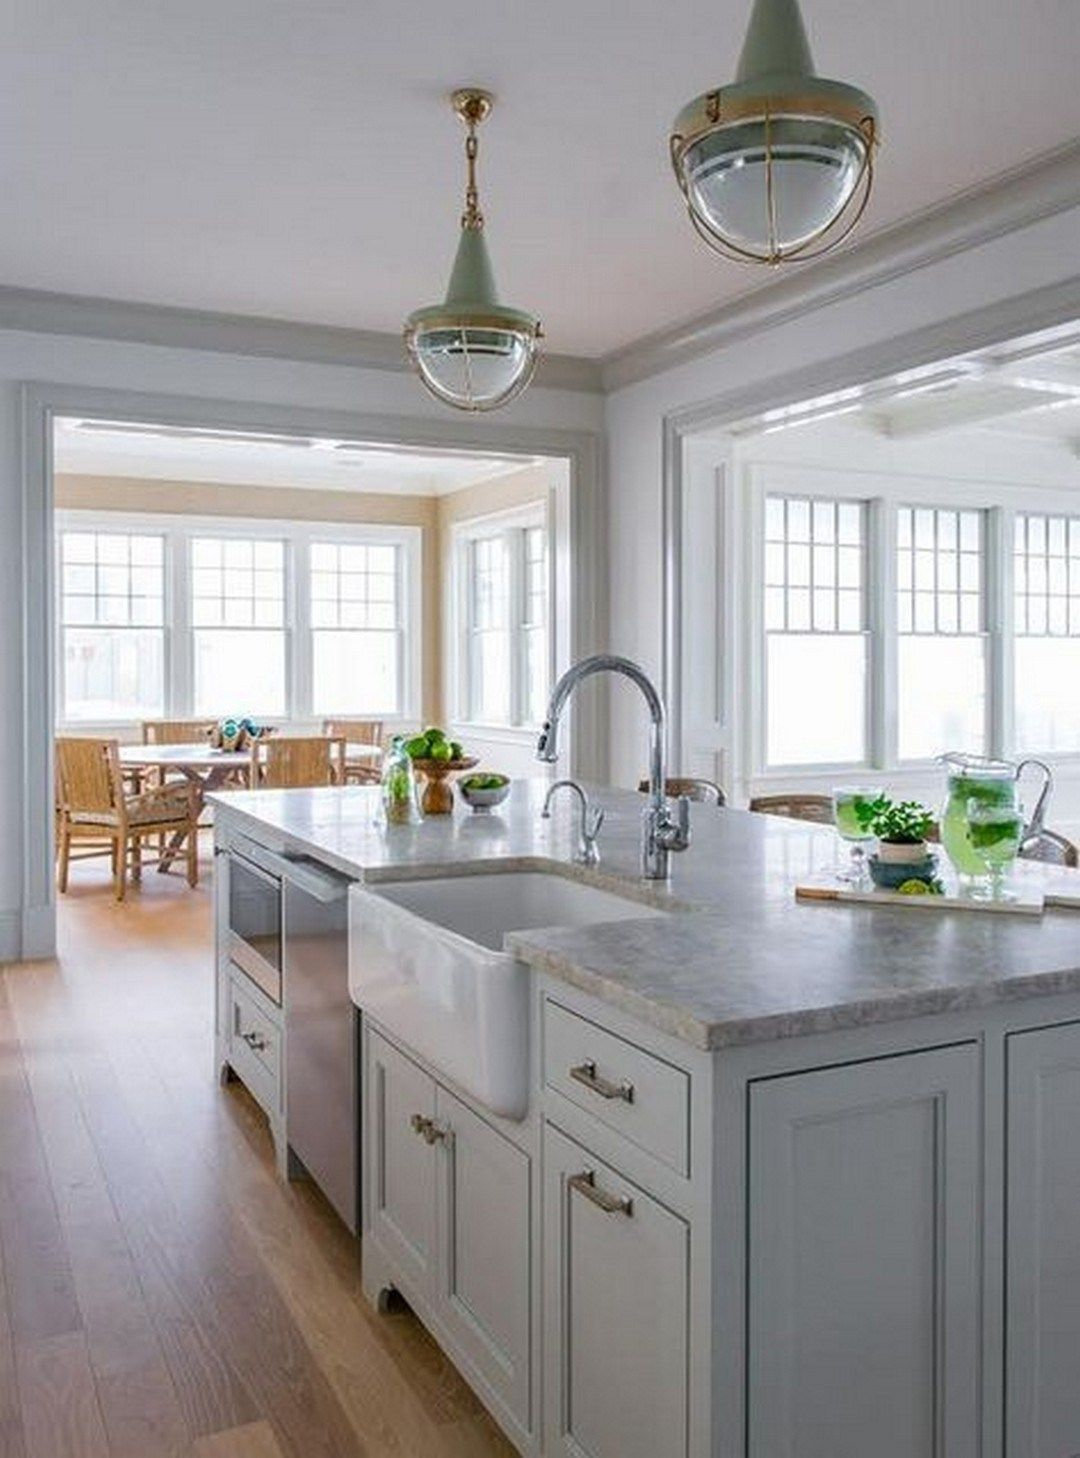 52 Farmhouse Sink Pros Cons Farmhouse Room Cons Farmhouse Farmhousesinkprosandcons With Images Kitchen Island With Sink Functional Kitchen Island Kitchen Layout